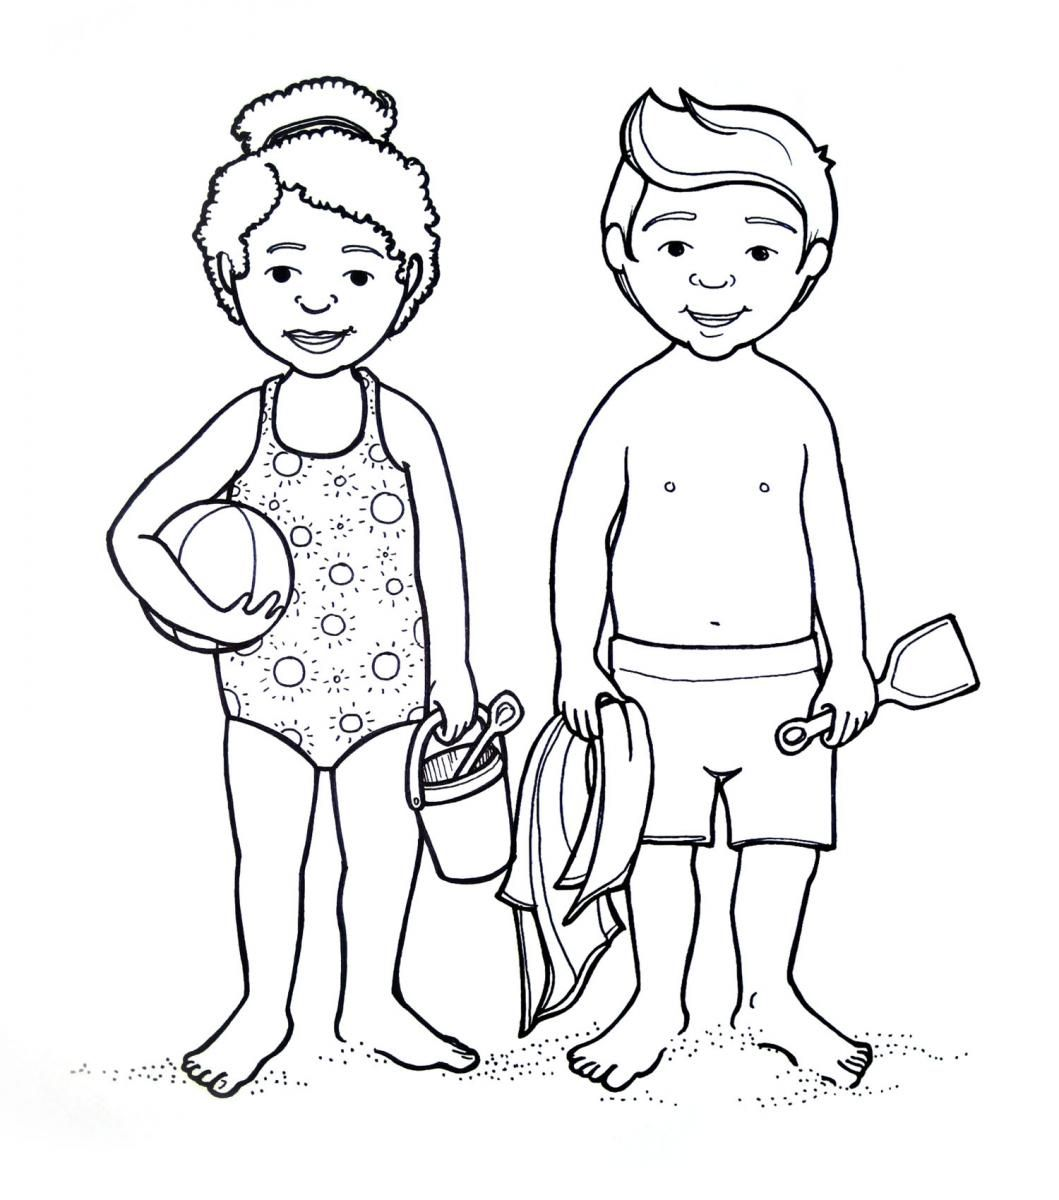 Boy Body Coloring Page Coloring Pages For All Ages Coloring Home